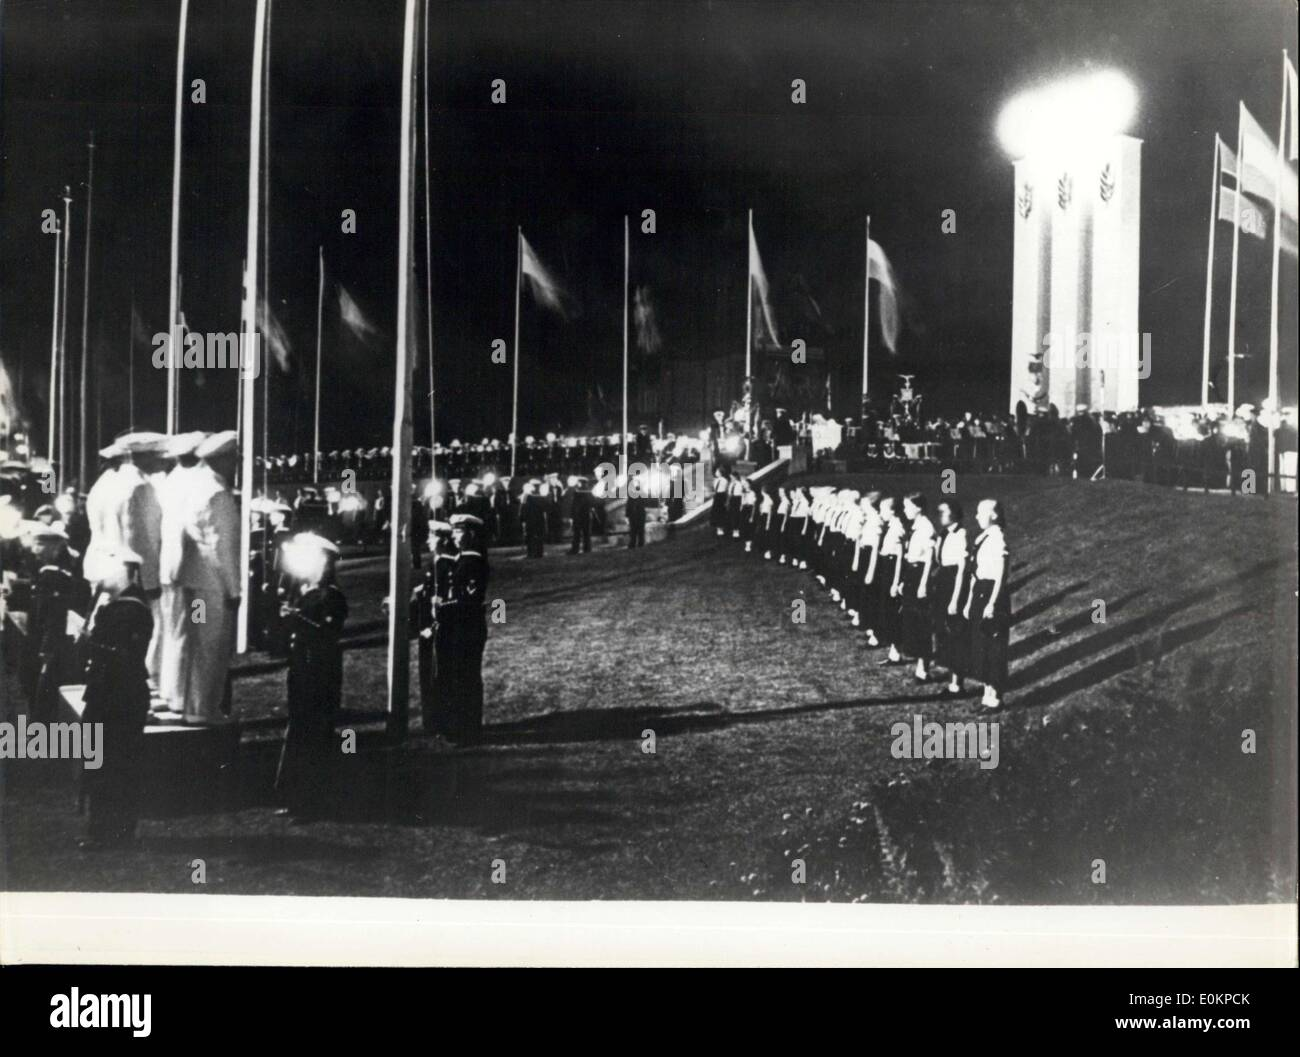 Mar. 05, 1936 - Kiel 1936 Closure for the yatching games, in presence of a big audience was closure ceremonies of yatching games, it took place at Pont Bellevue Square with all the Olympic all medal;s. (Left) Yatching players (right) a crown in-front of the players with me Olympic medals. - Stock Image